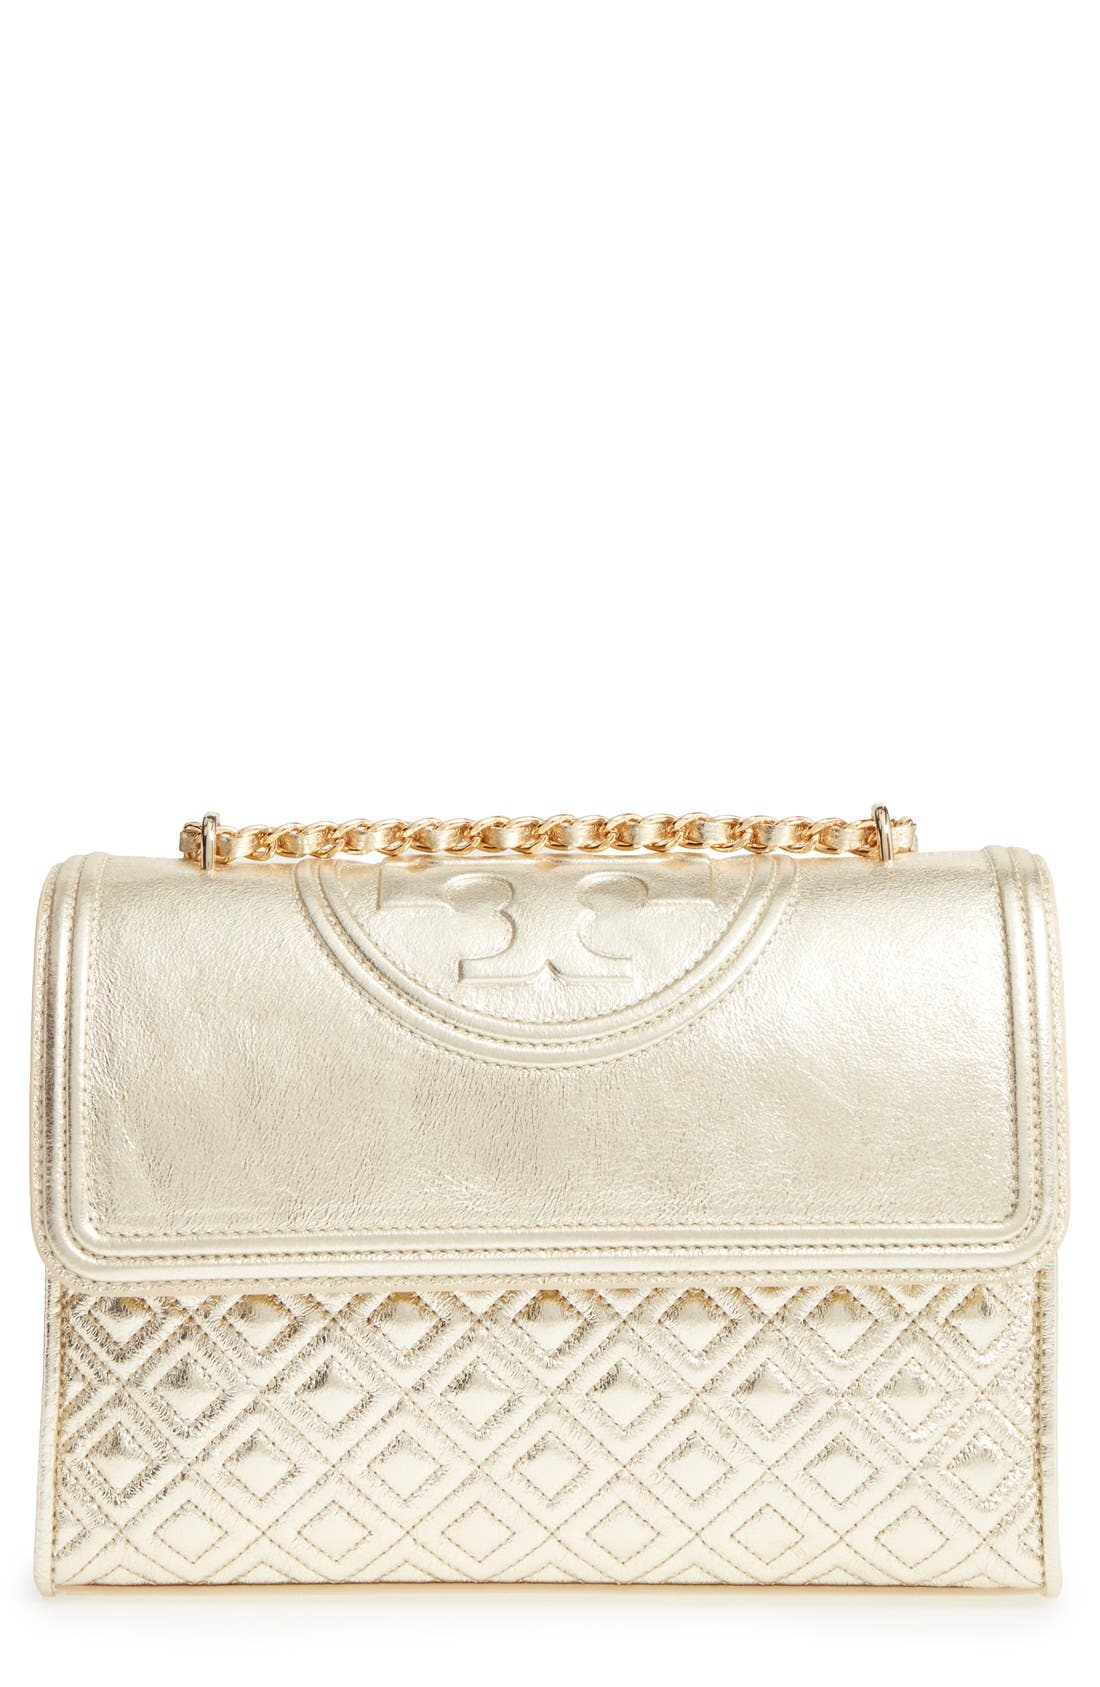 Main Image - Tory Burch Fleming Leather Shoulder Bag